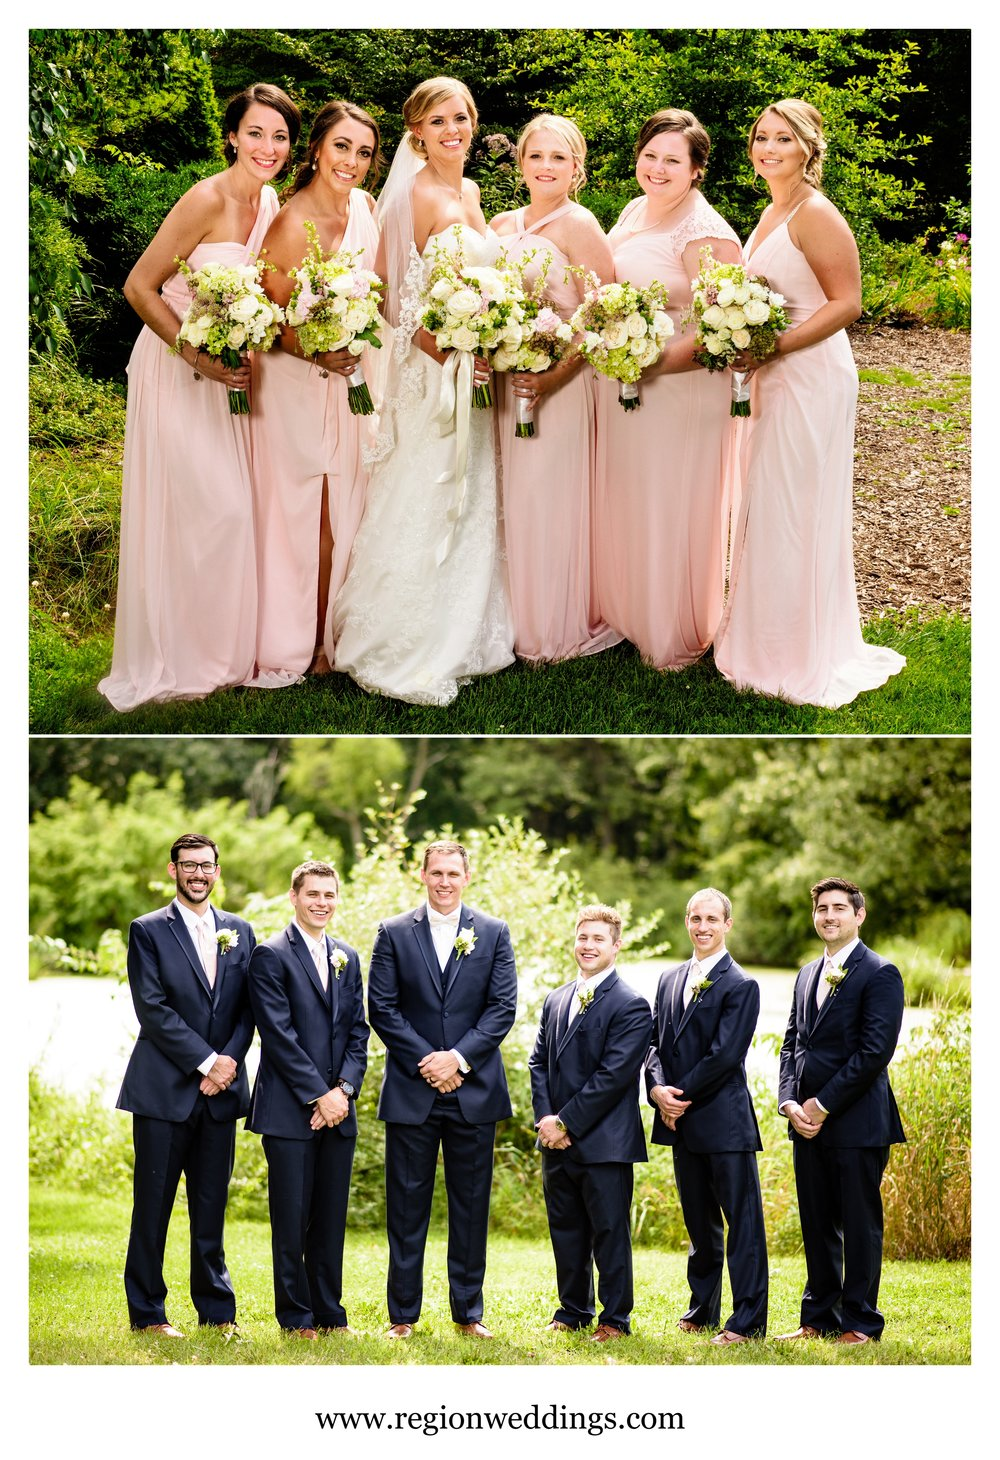 Bridesmaid and groomsmen group photos at Taltree Arboretum.